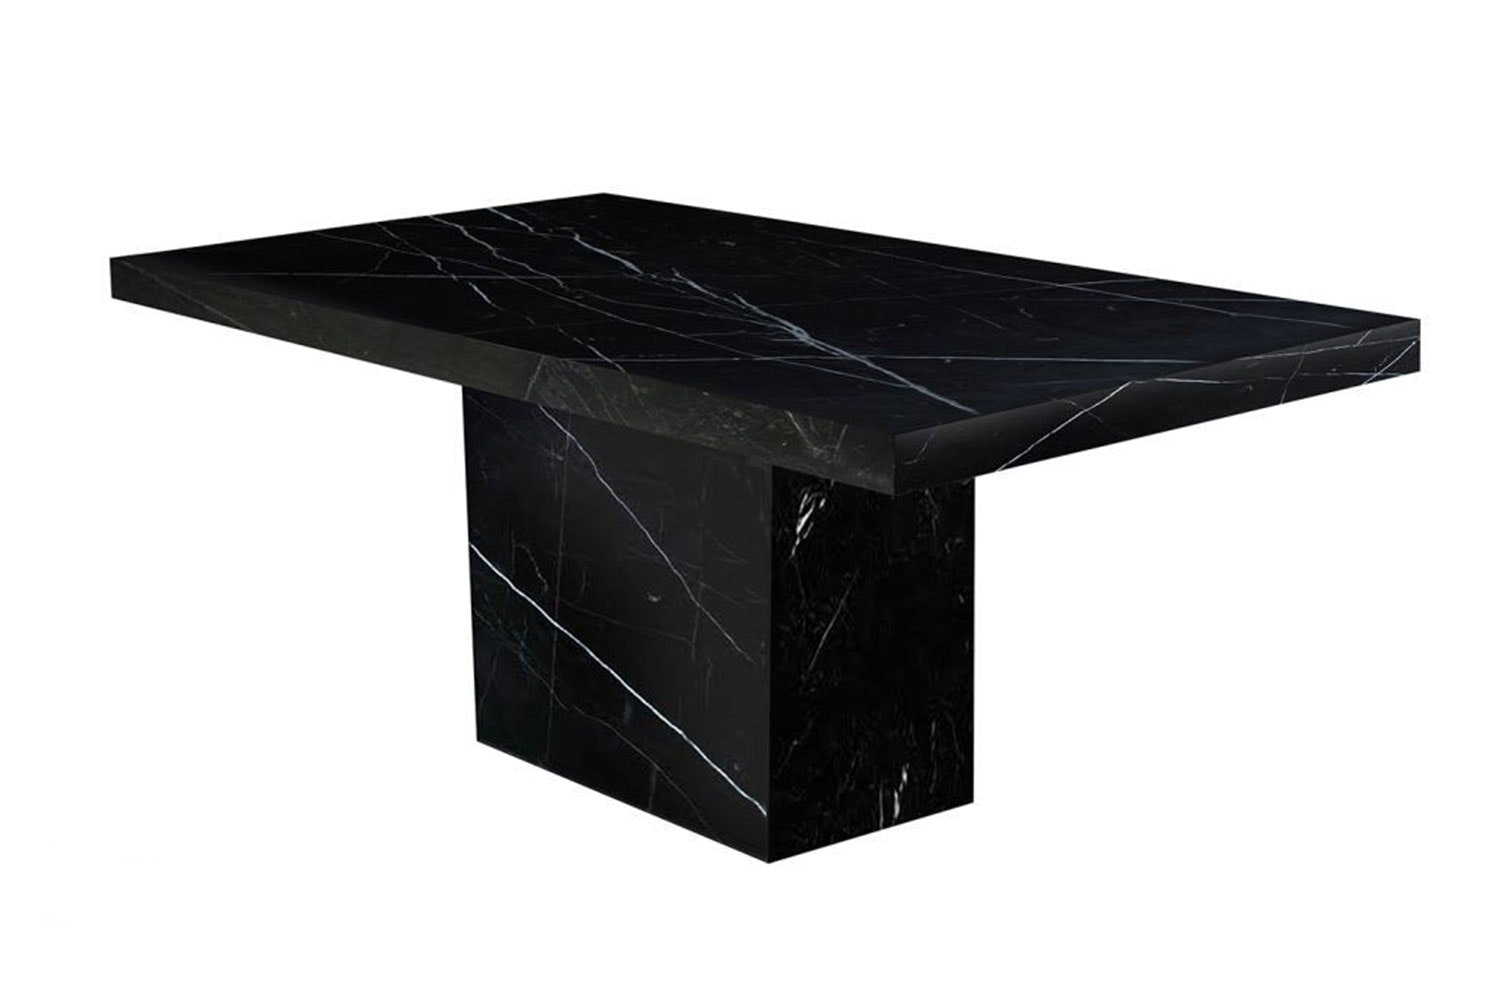 Noche2 Large Dining Table by Collage